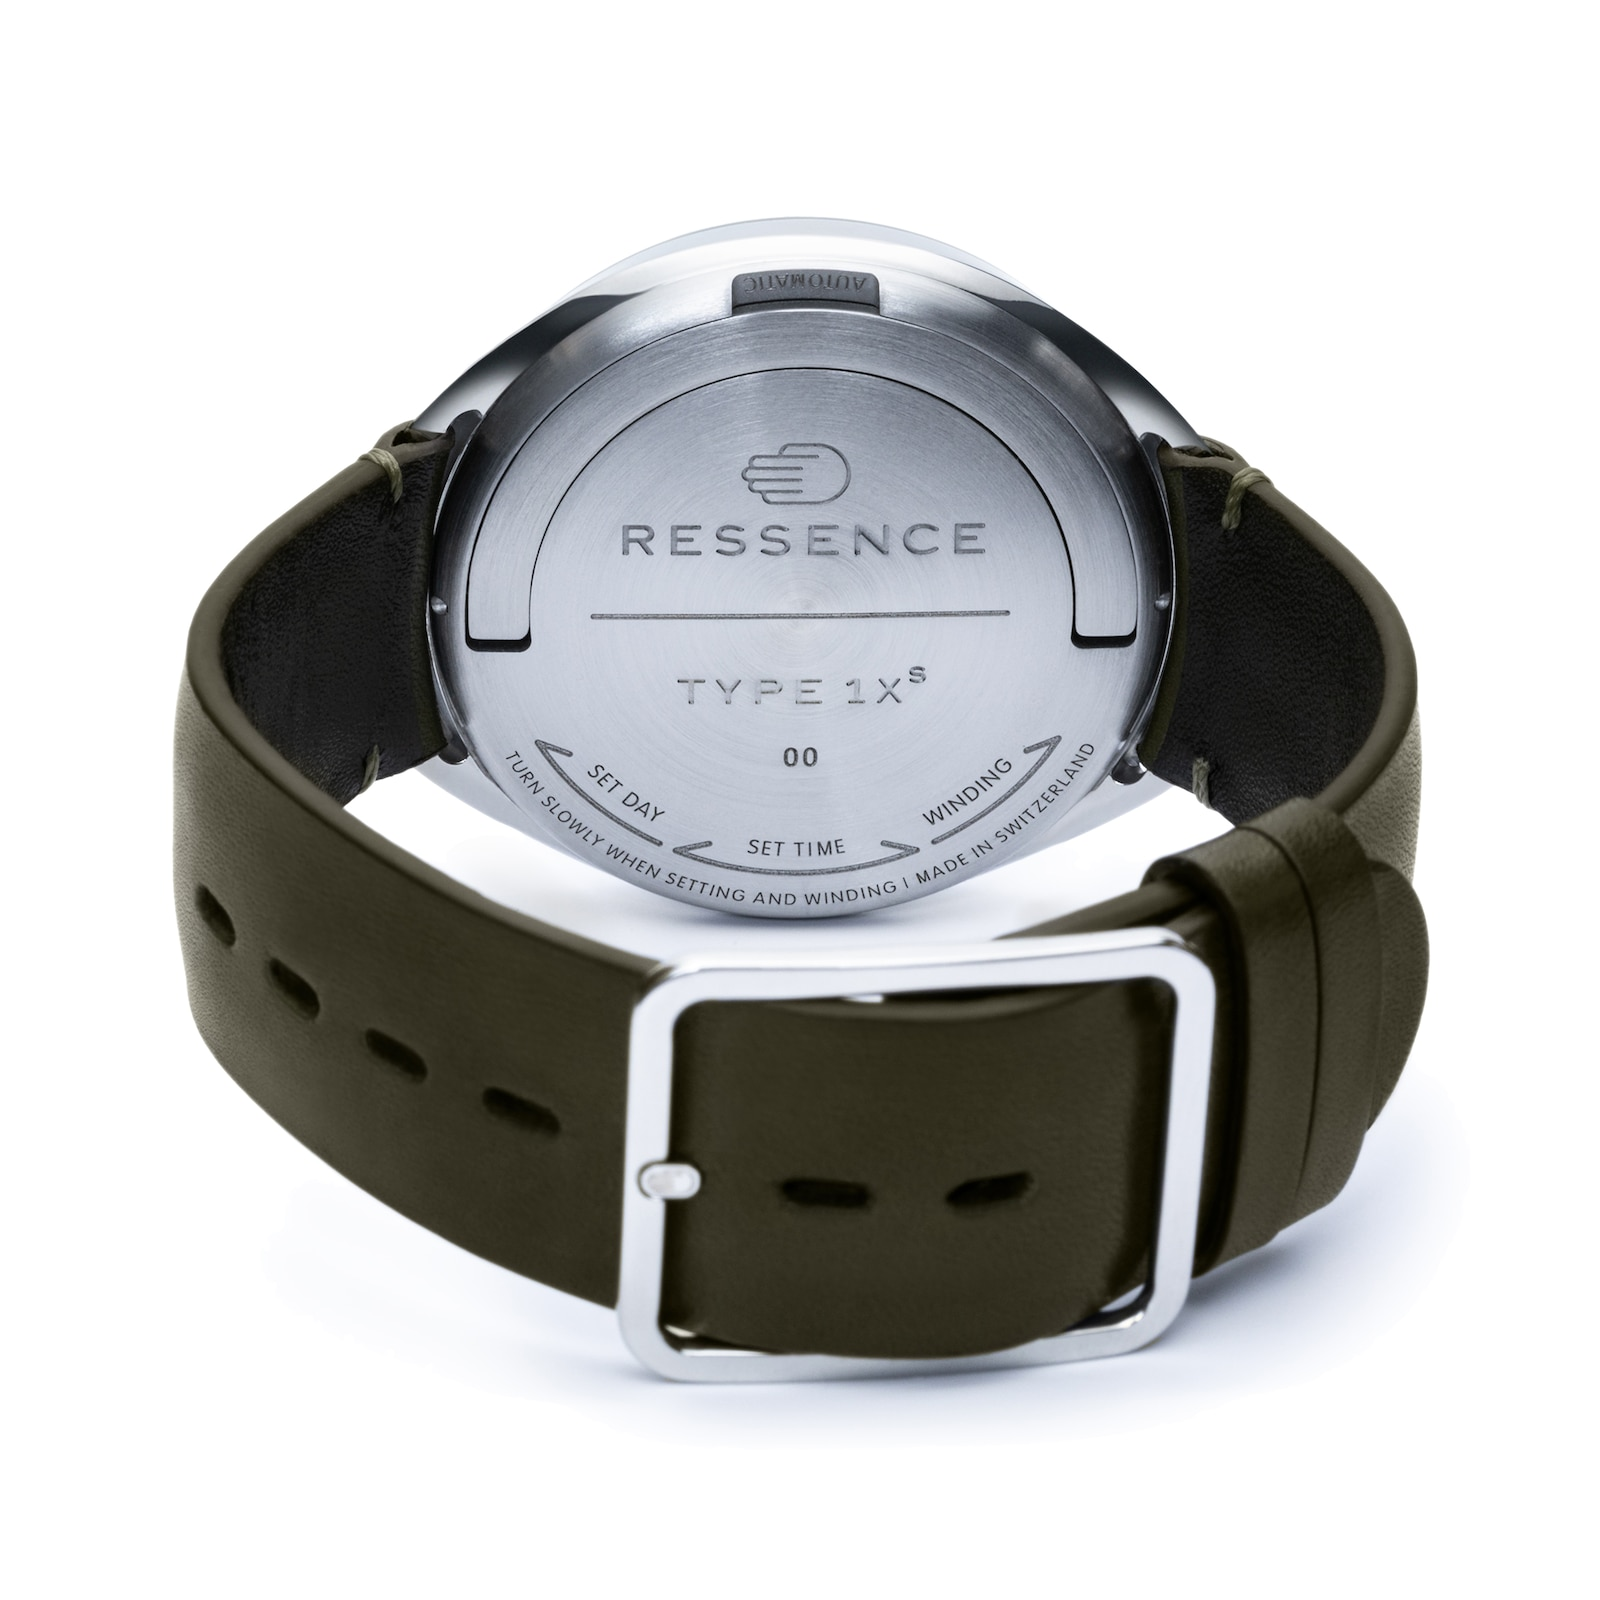 Ressence Type 1 Slim X 10th Anniversary